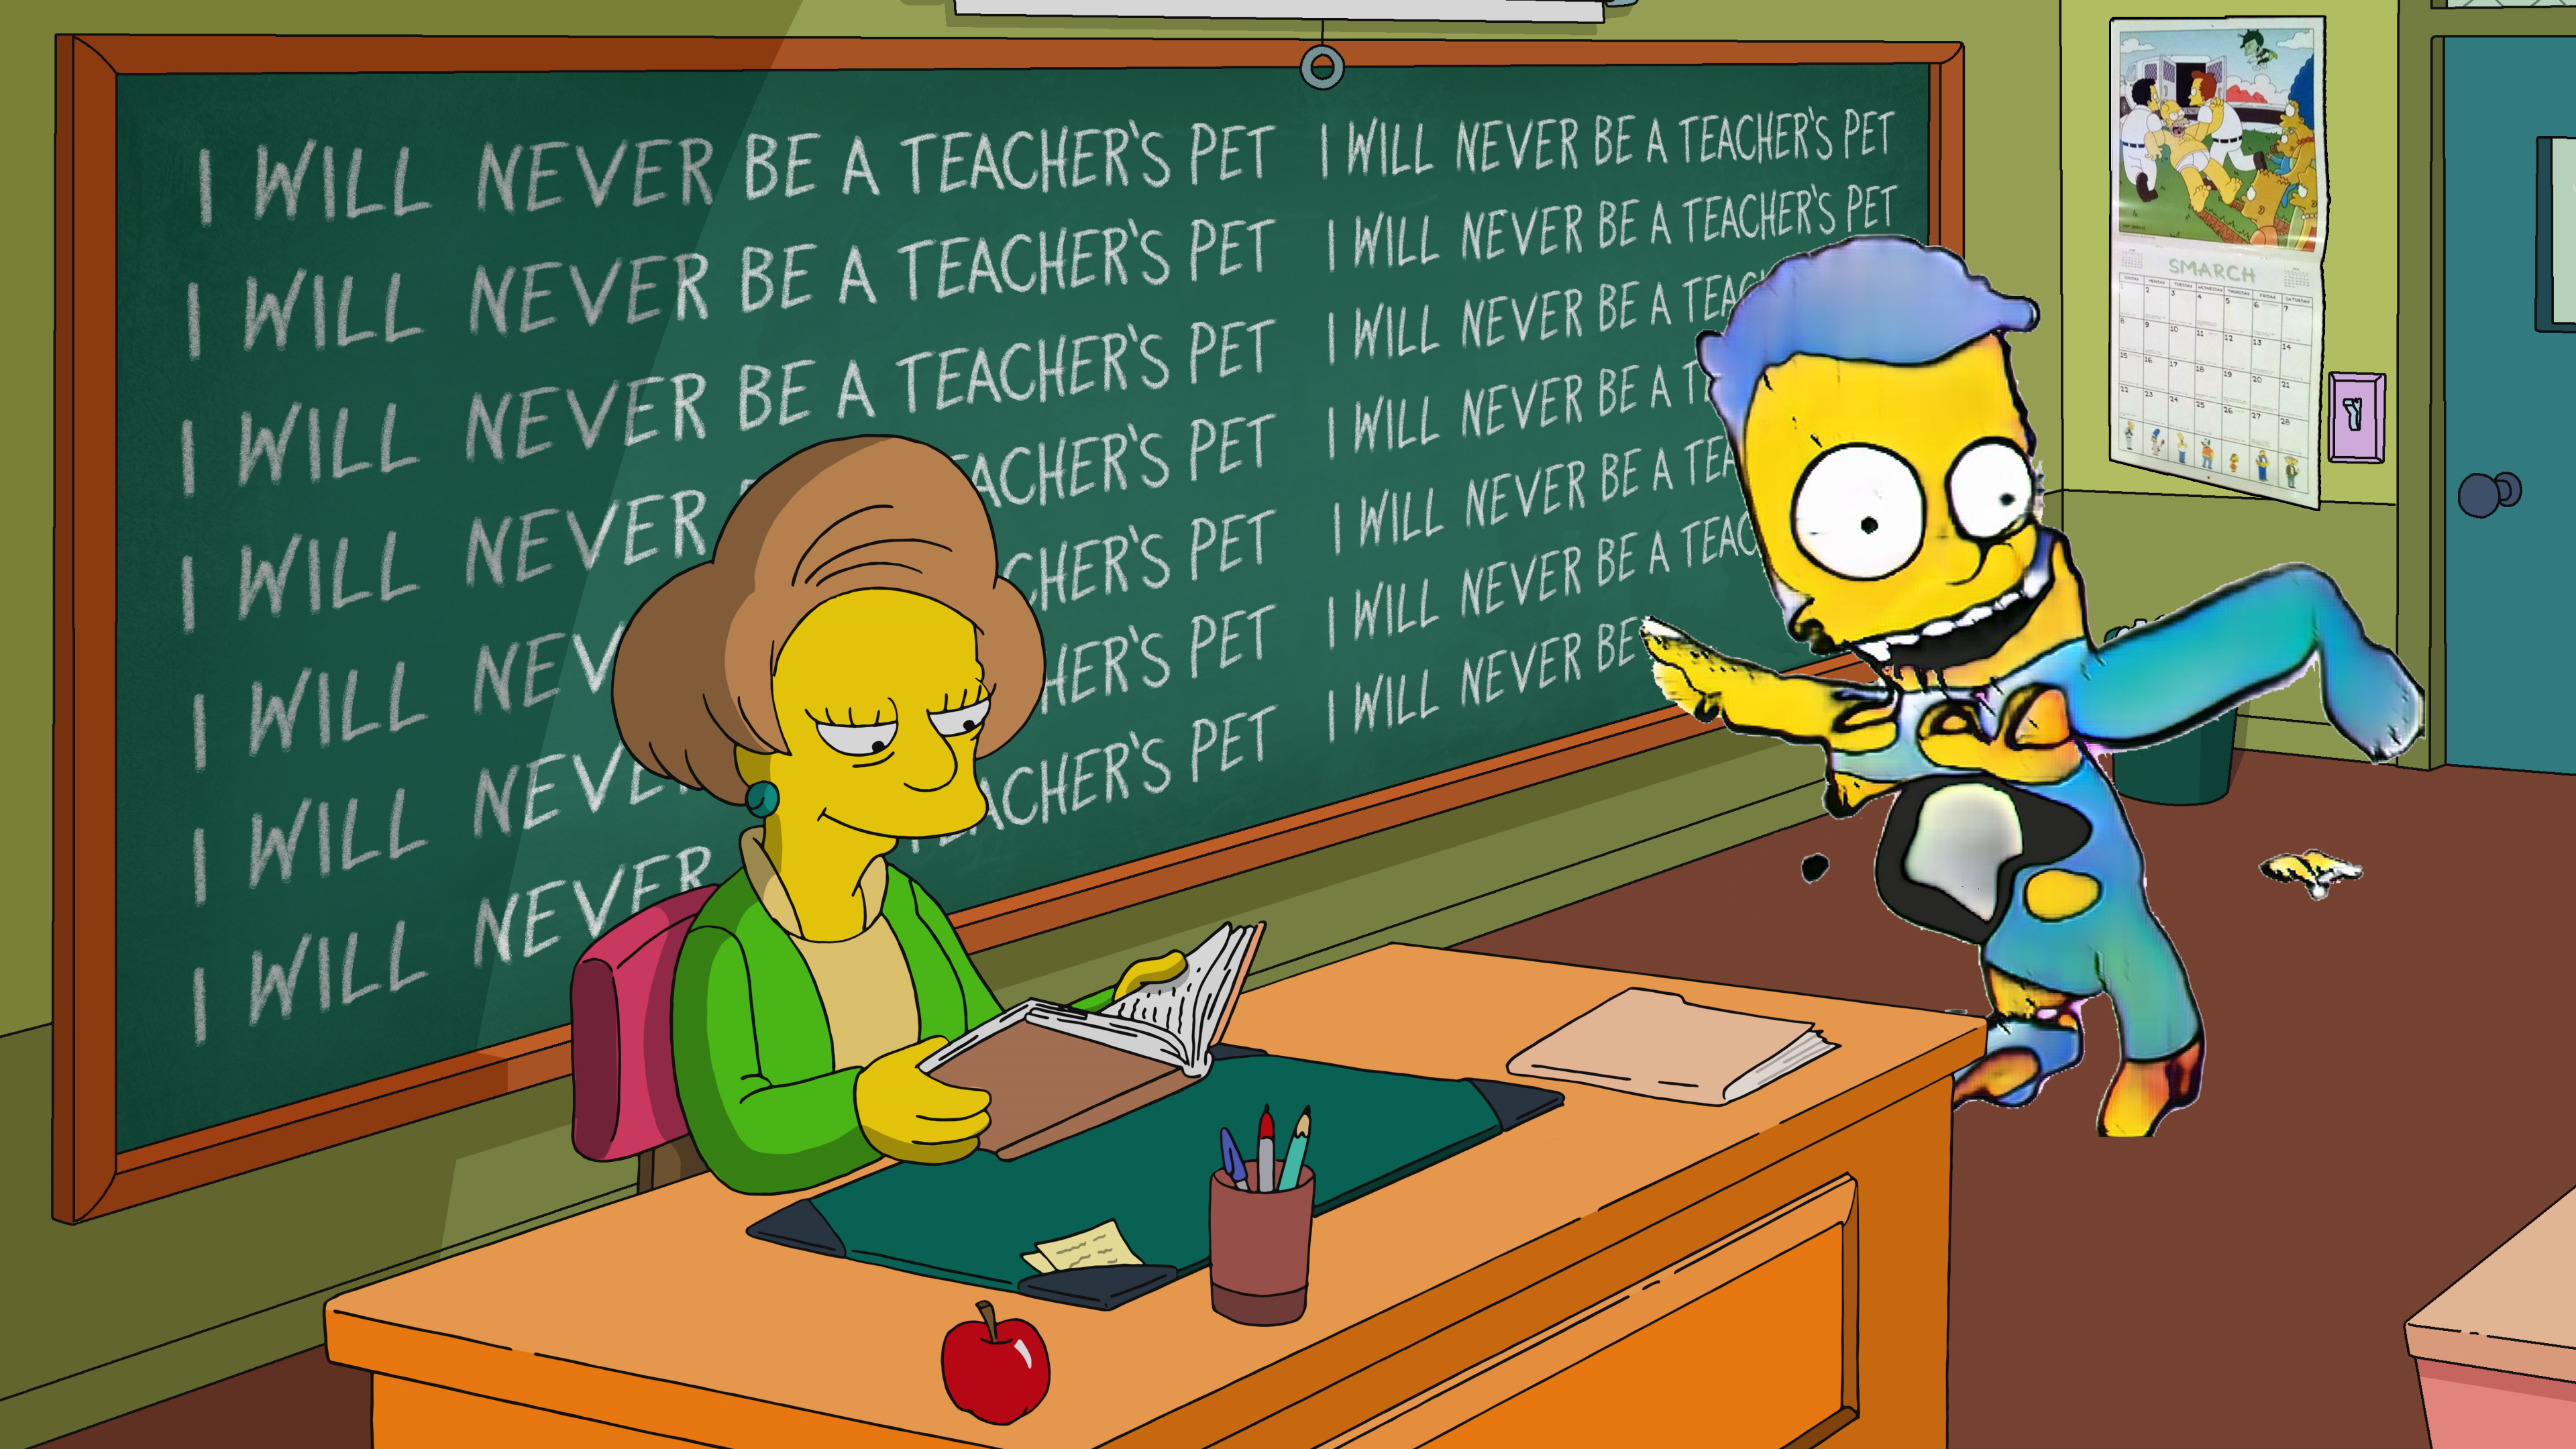 An image of Mrs. Krabappel reading a book while a fucked-up Bart-like creature writes on the chalkboard. Also, there is a Smarch calendar.